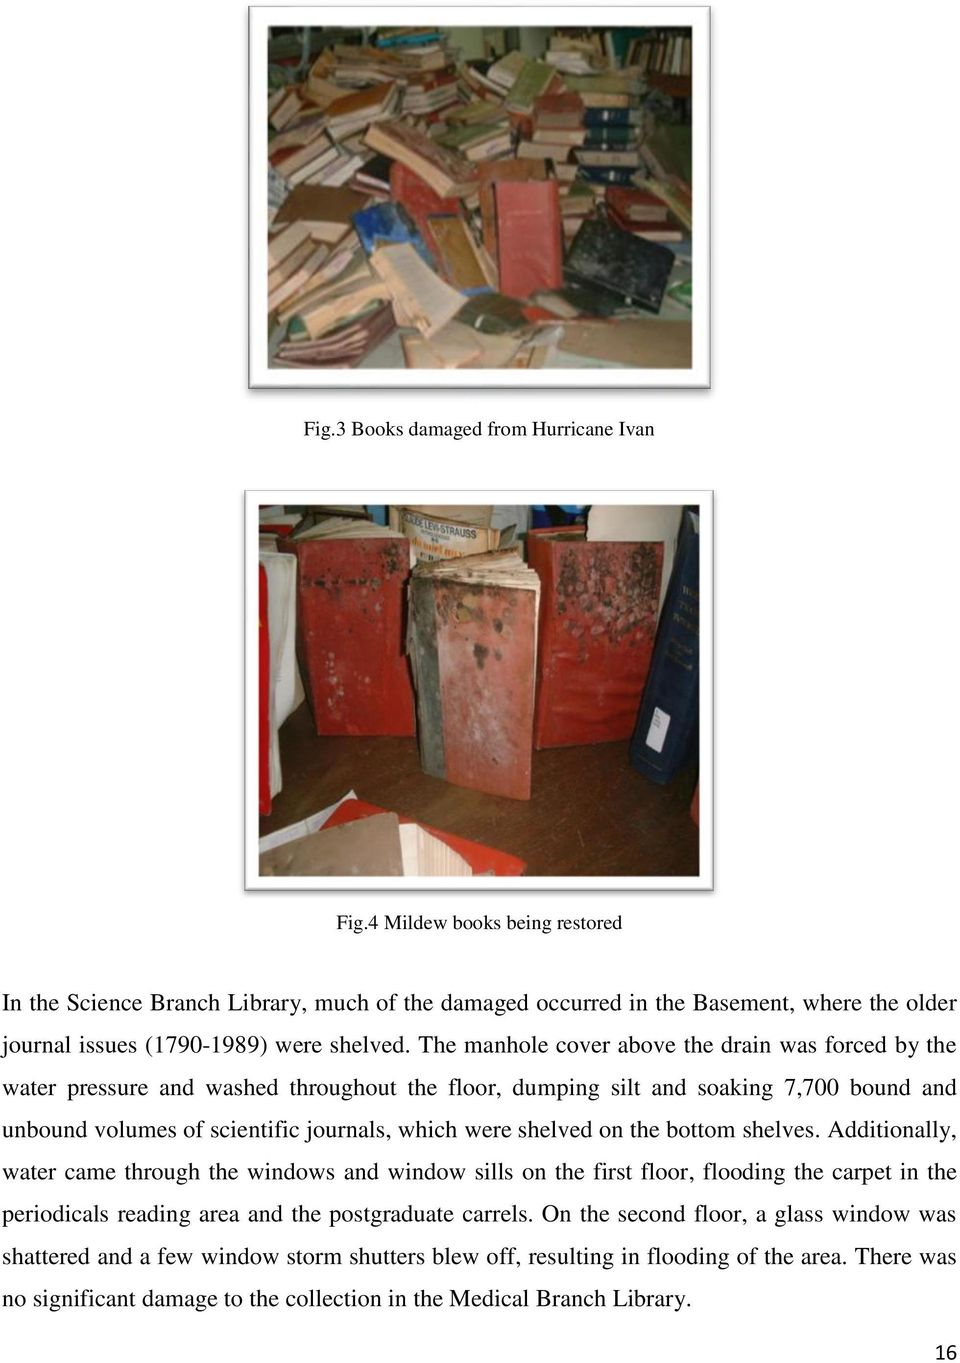 The manhole cover above the drain was forced by the water pressure and washed throughout the floor, dumping silt and soaking 7,700 bound and unbound volumes of scientific journals, which were shelved